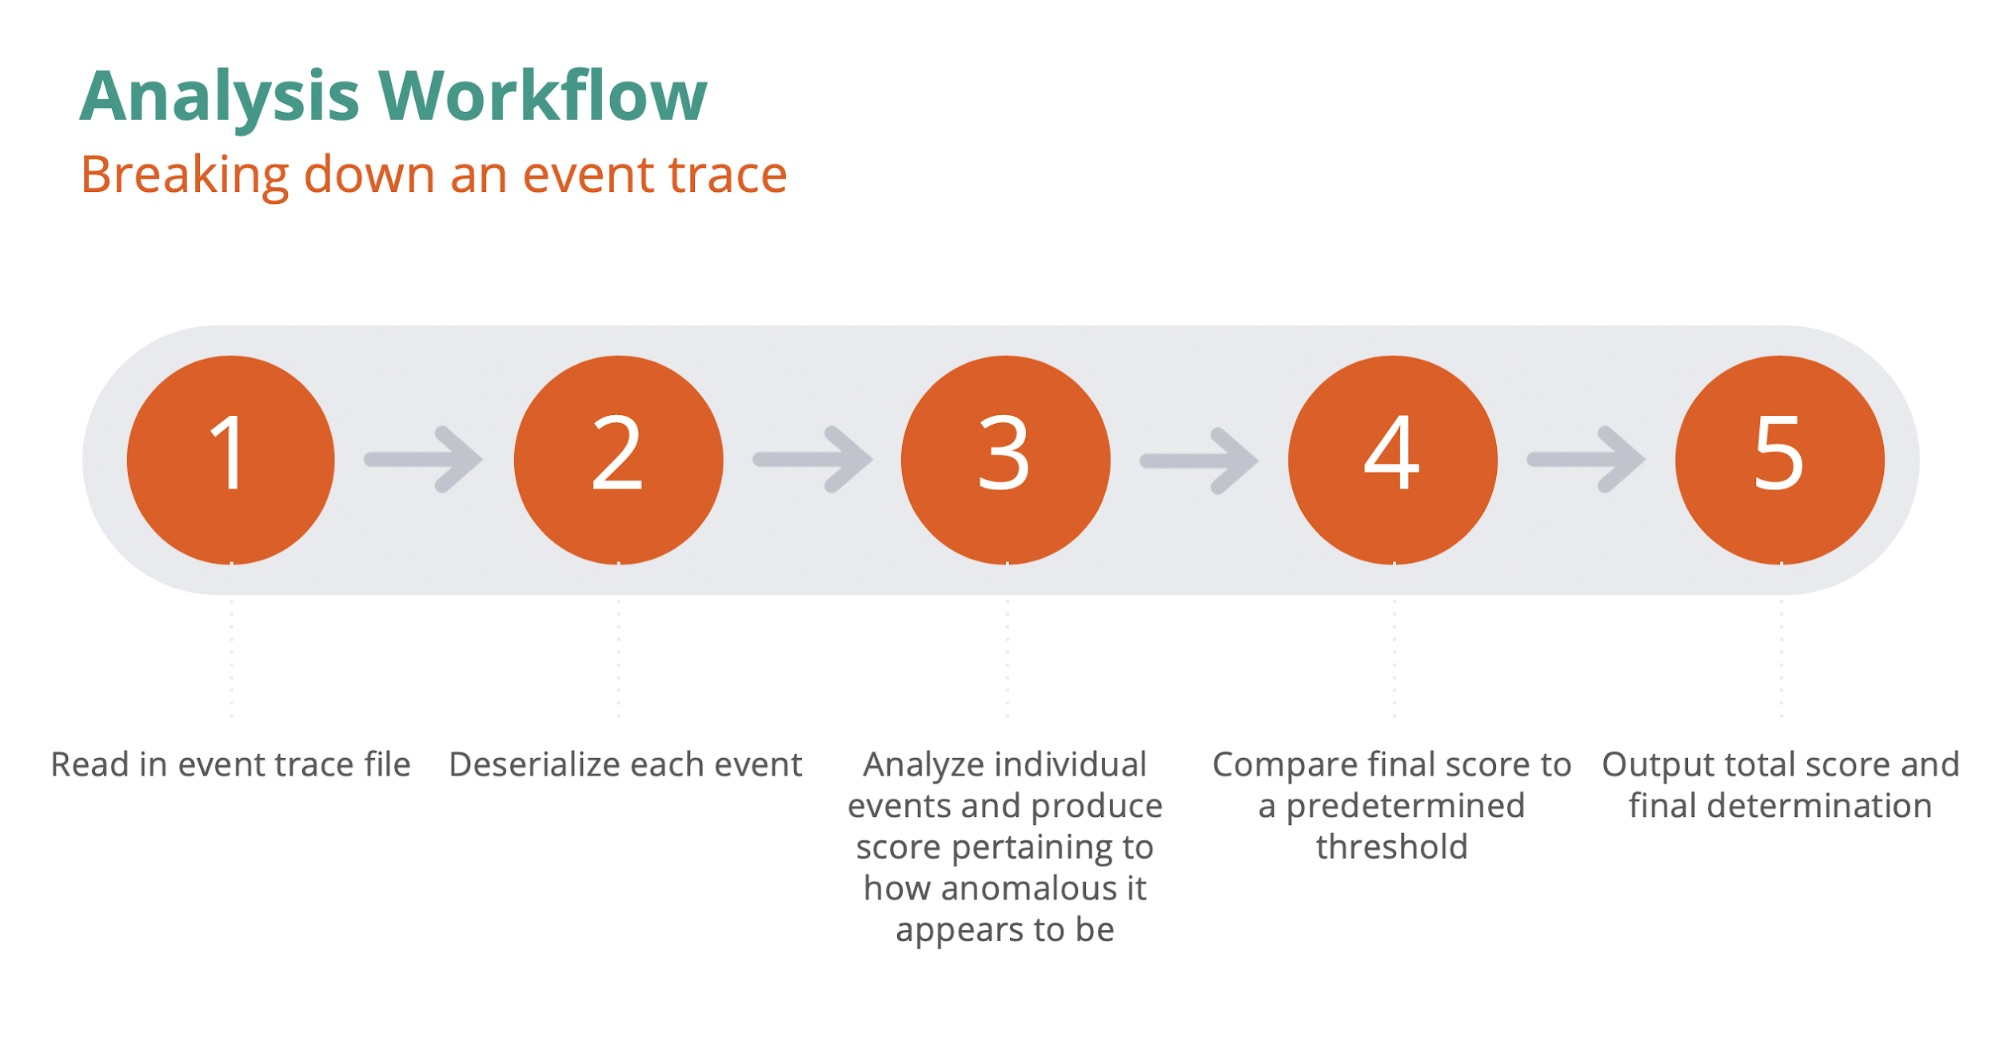 Breaking down an event trace